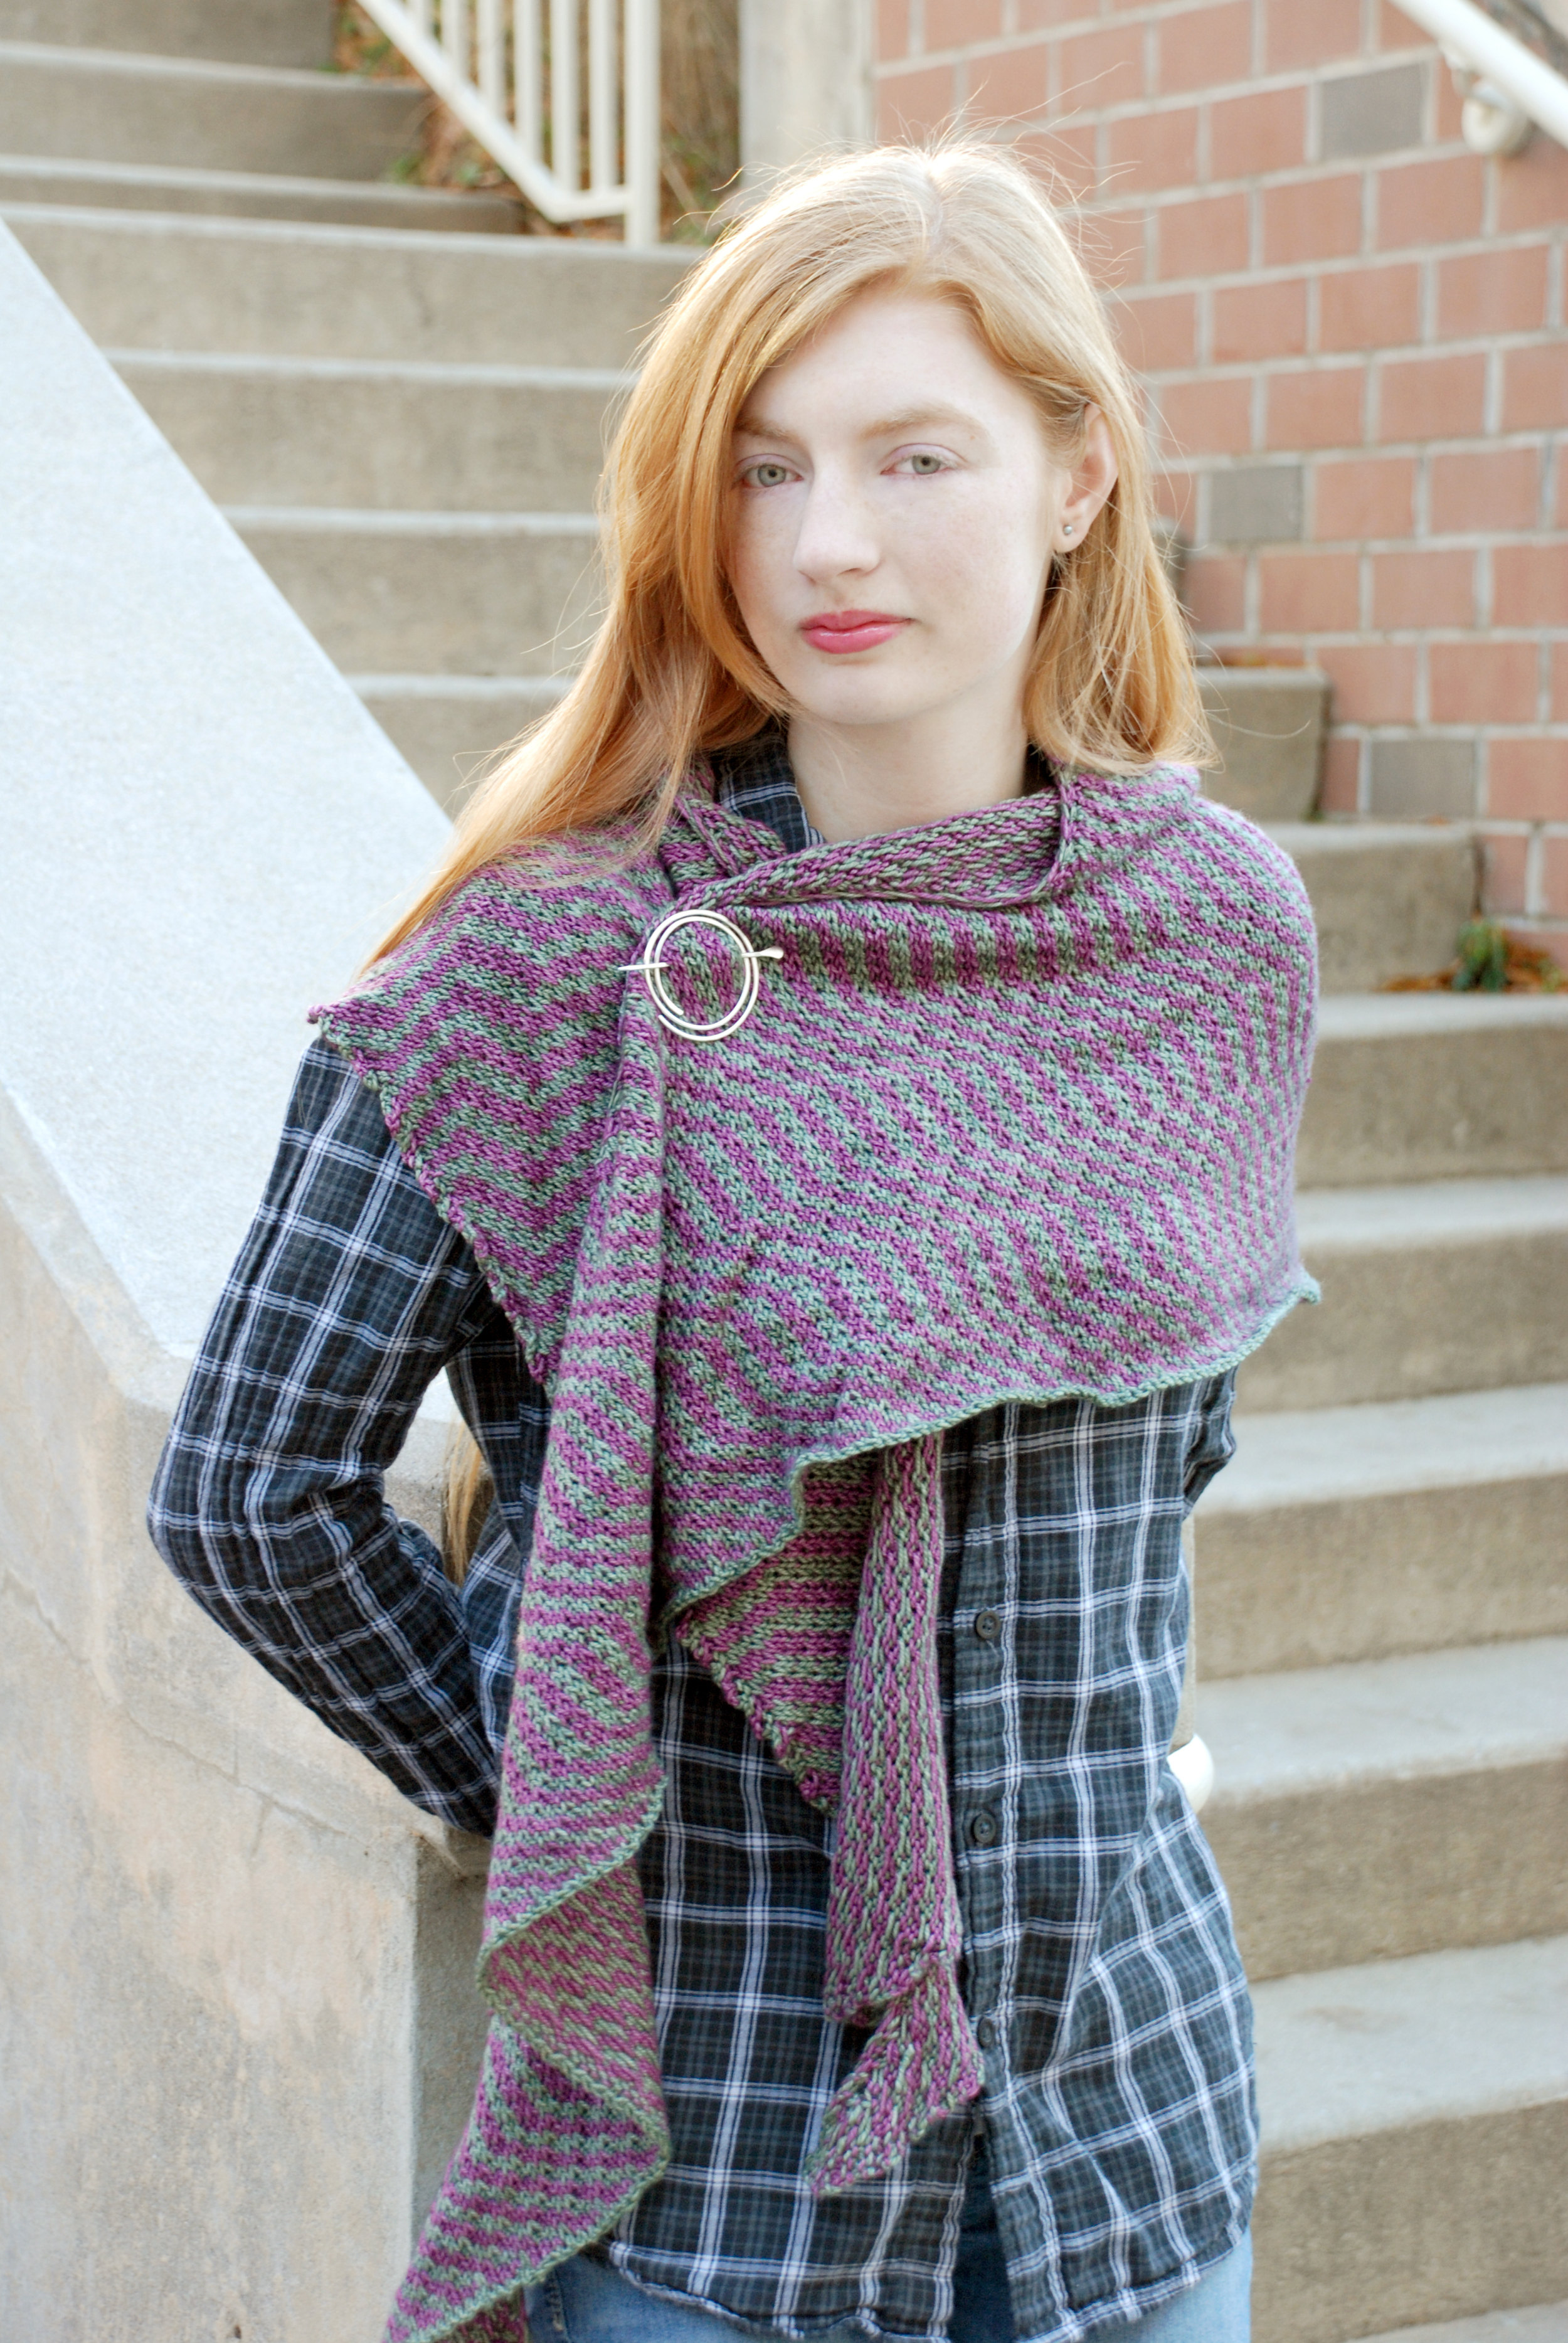 Zagless, knit in Squishy, shown in Aspen and Prudence.